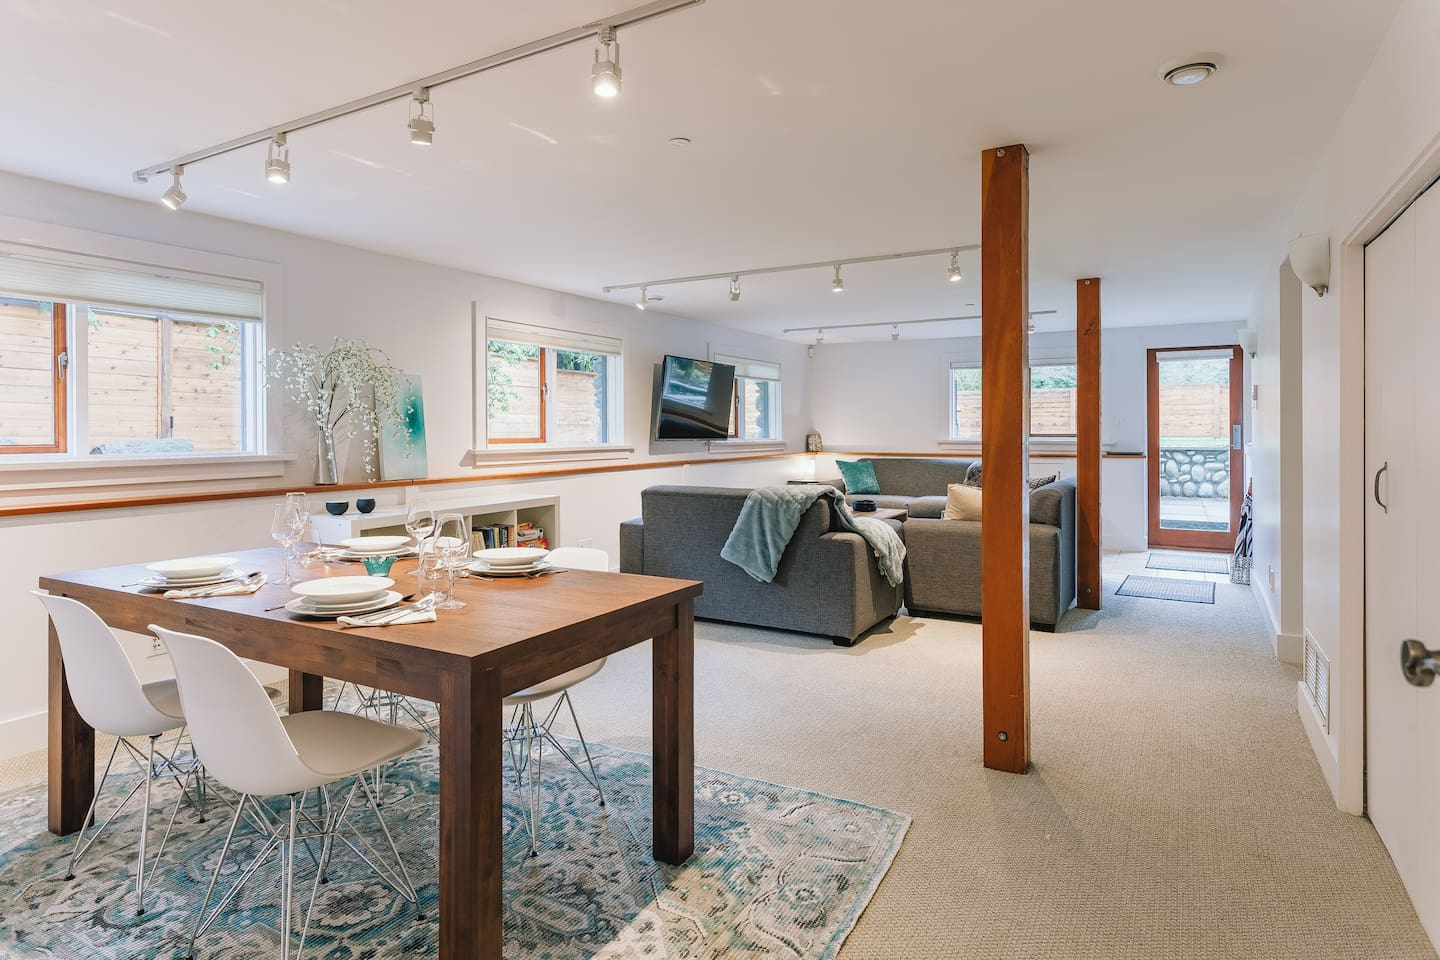 Bright, spacious dining and living room area.